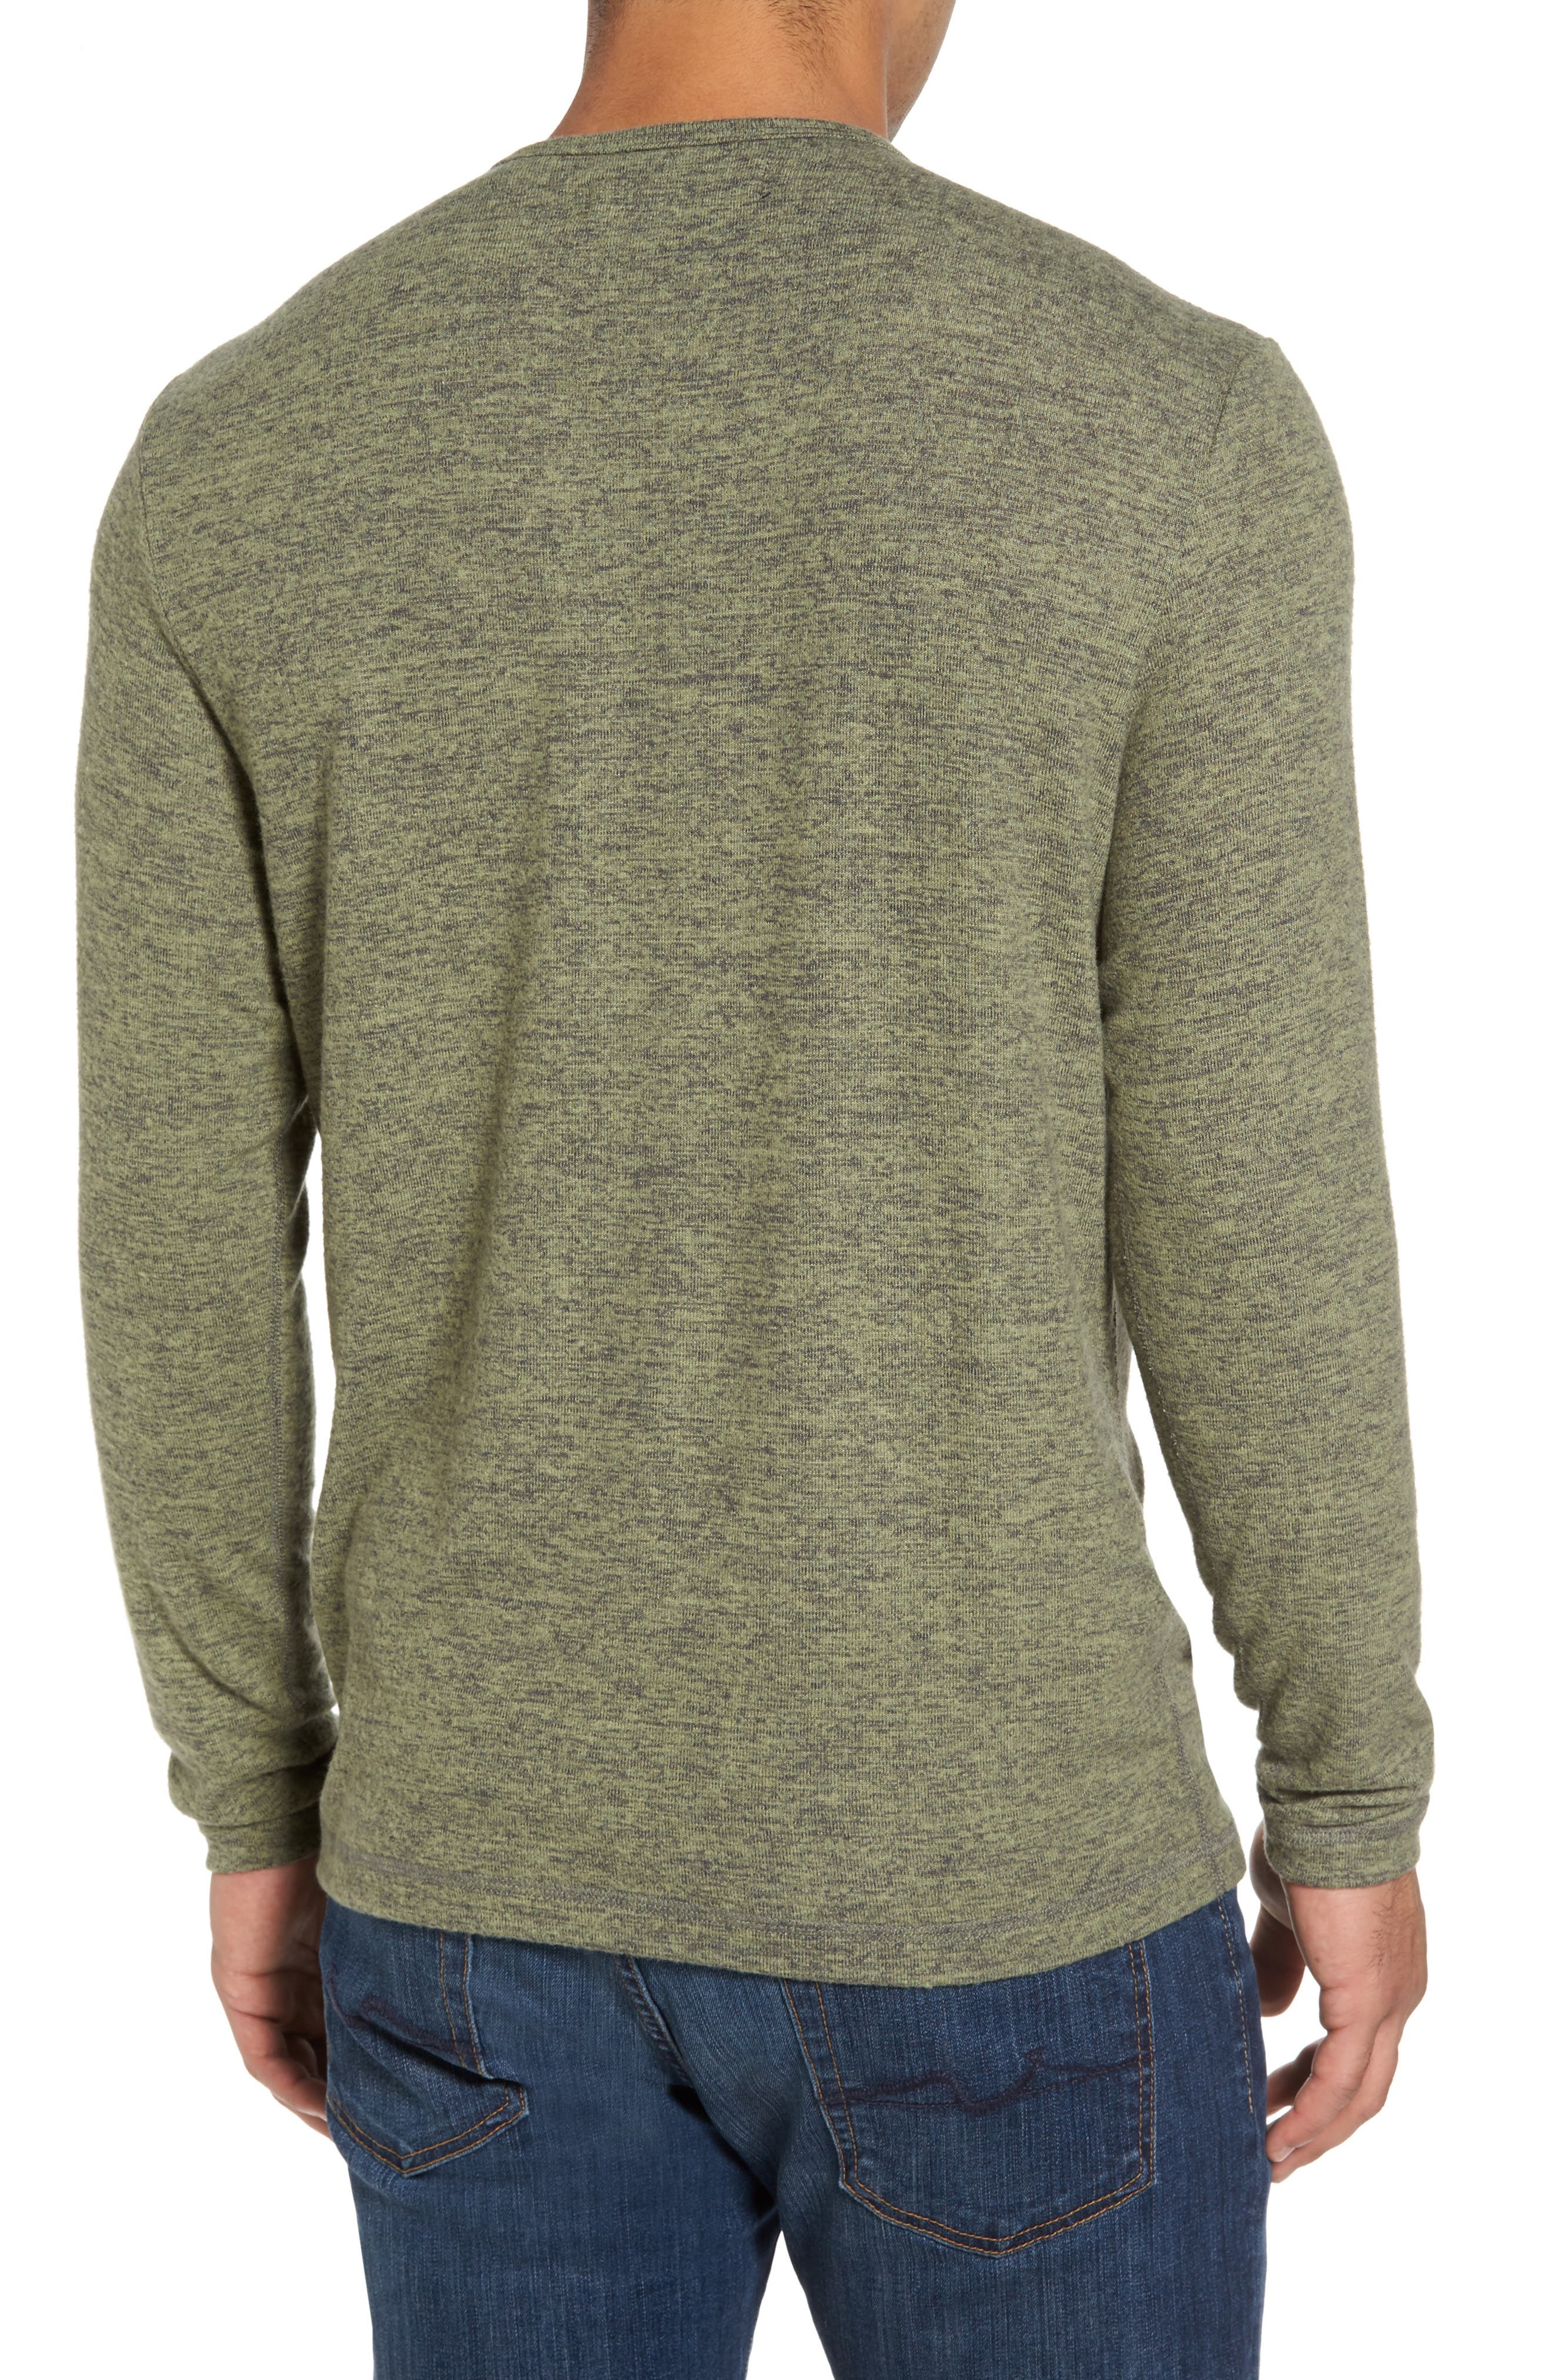 'Leeward' V-Neck Long Sleeve T-Shirt,                             Alternate thumbnail 2, color,                             Duty Tyme Heather